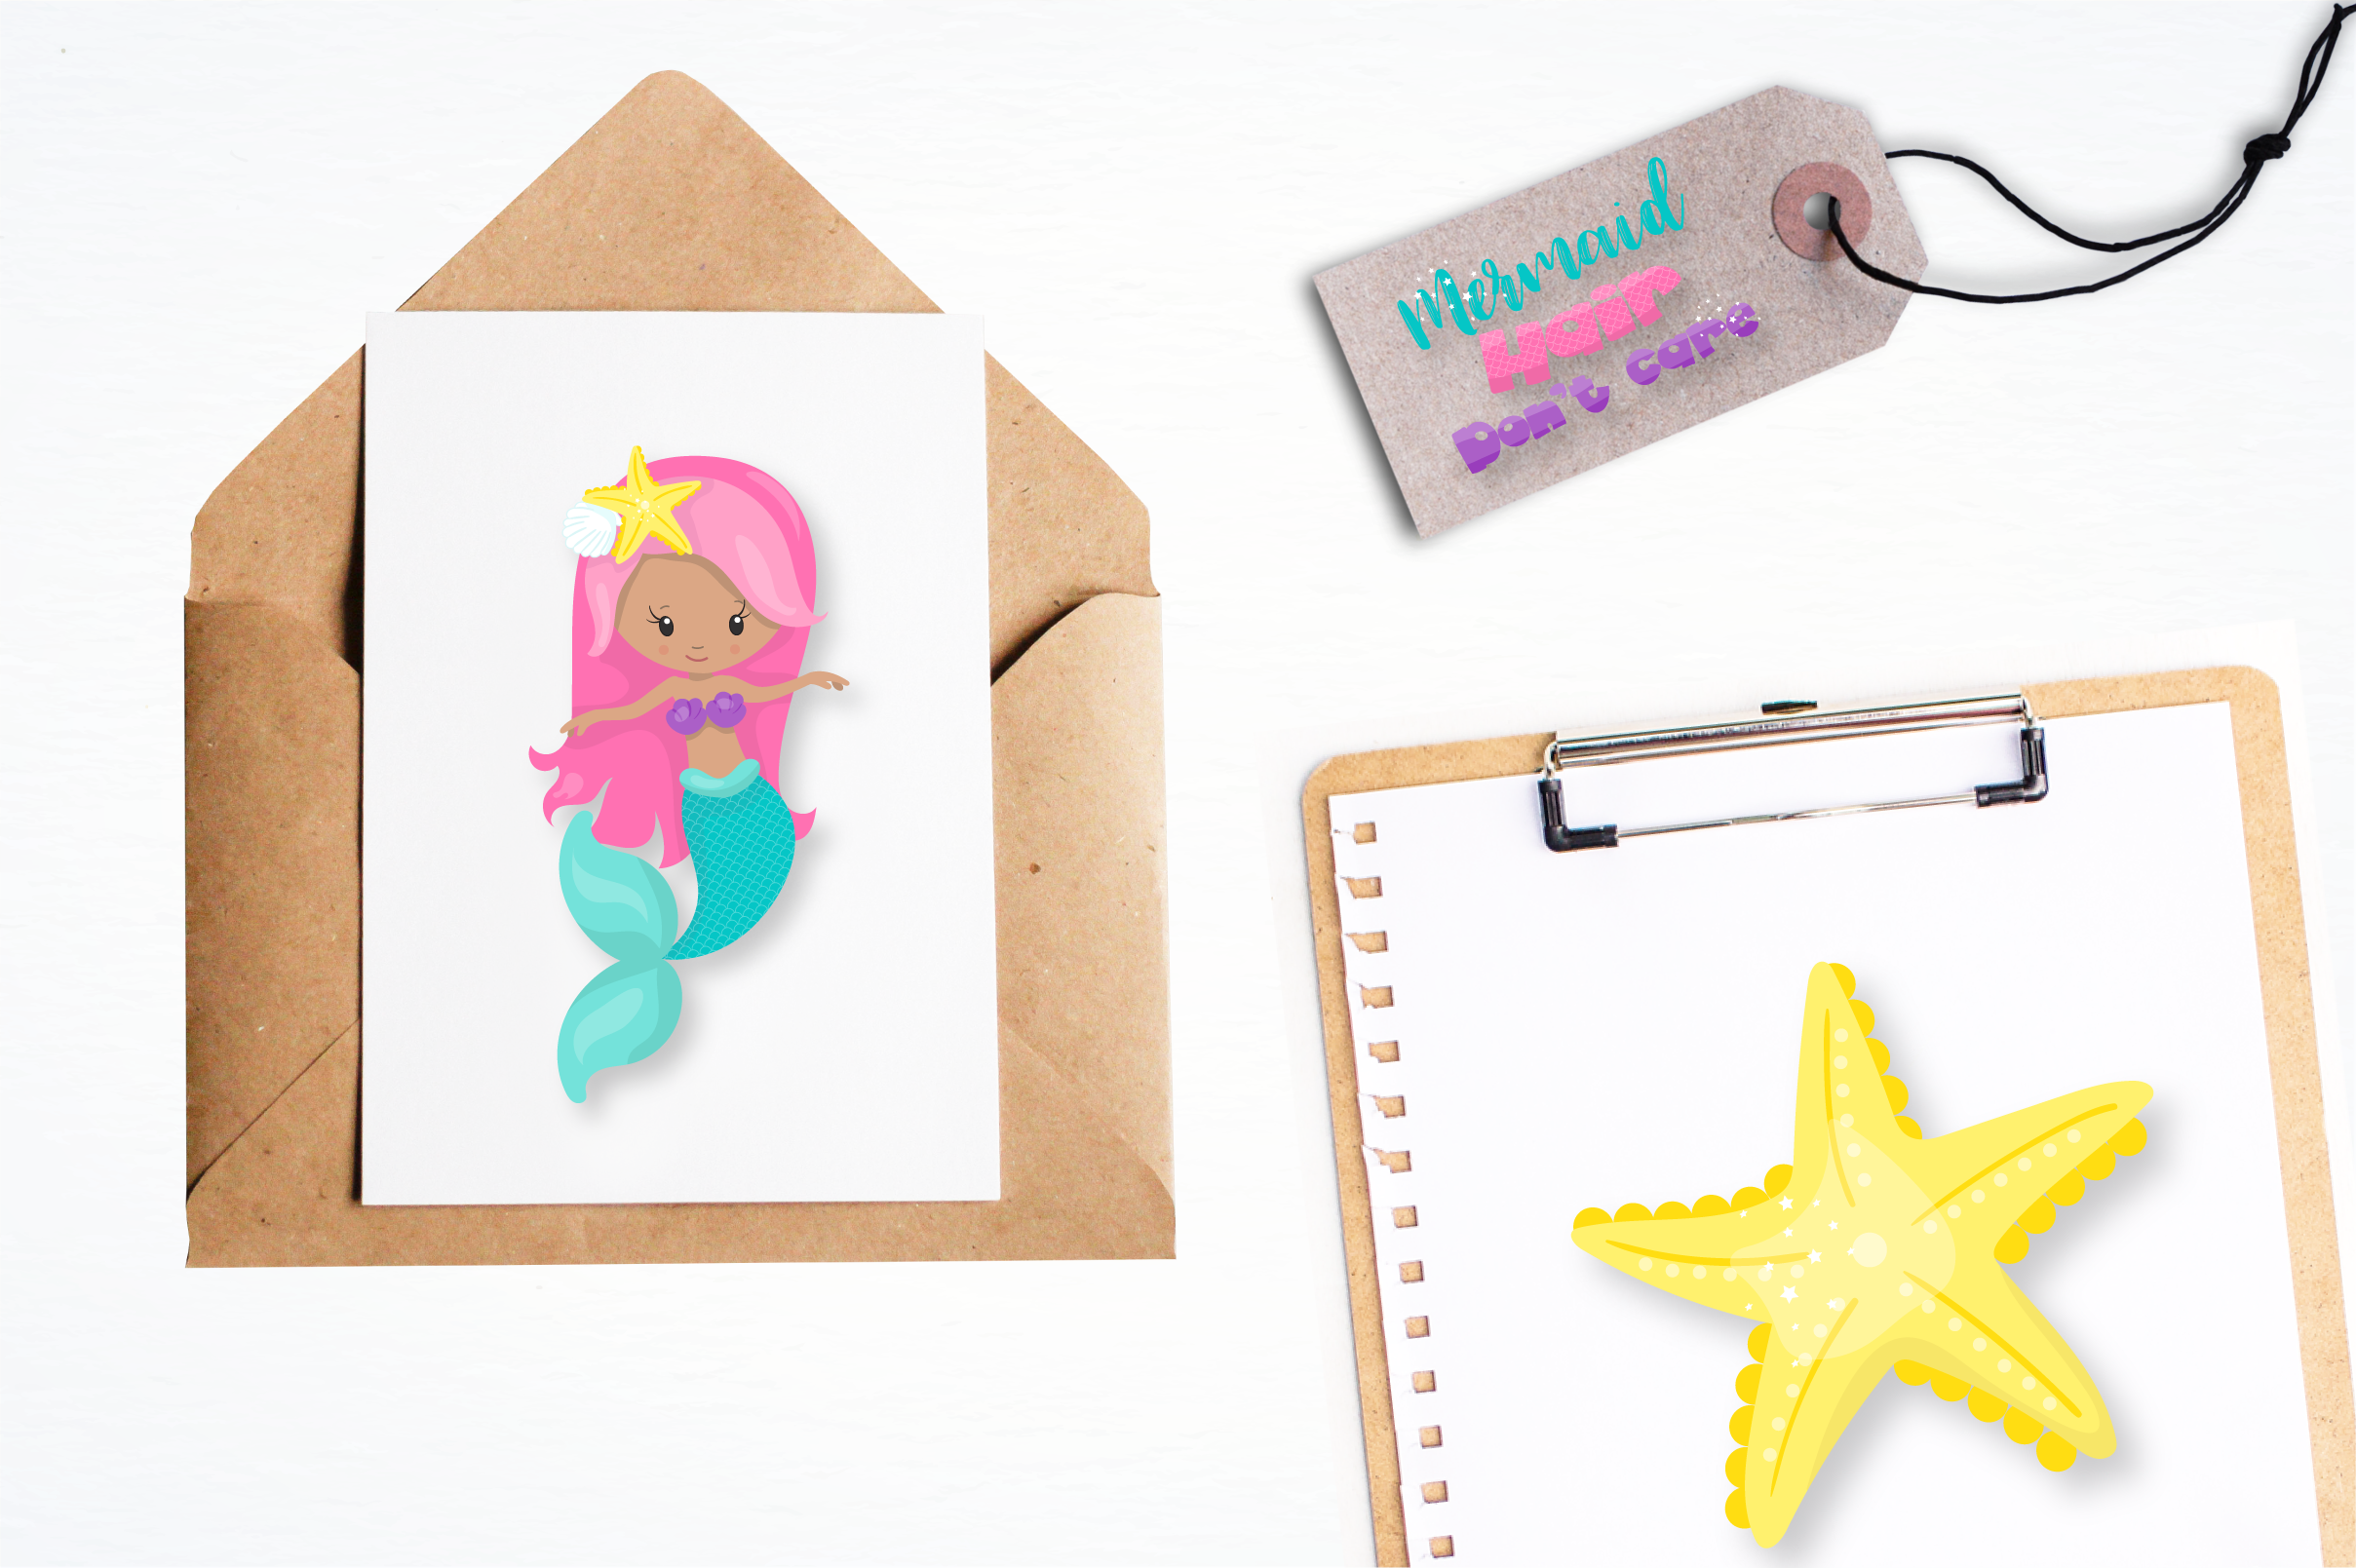 mermaid squad graphics and illustrations example image 5